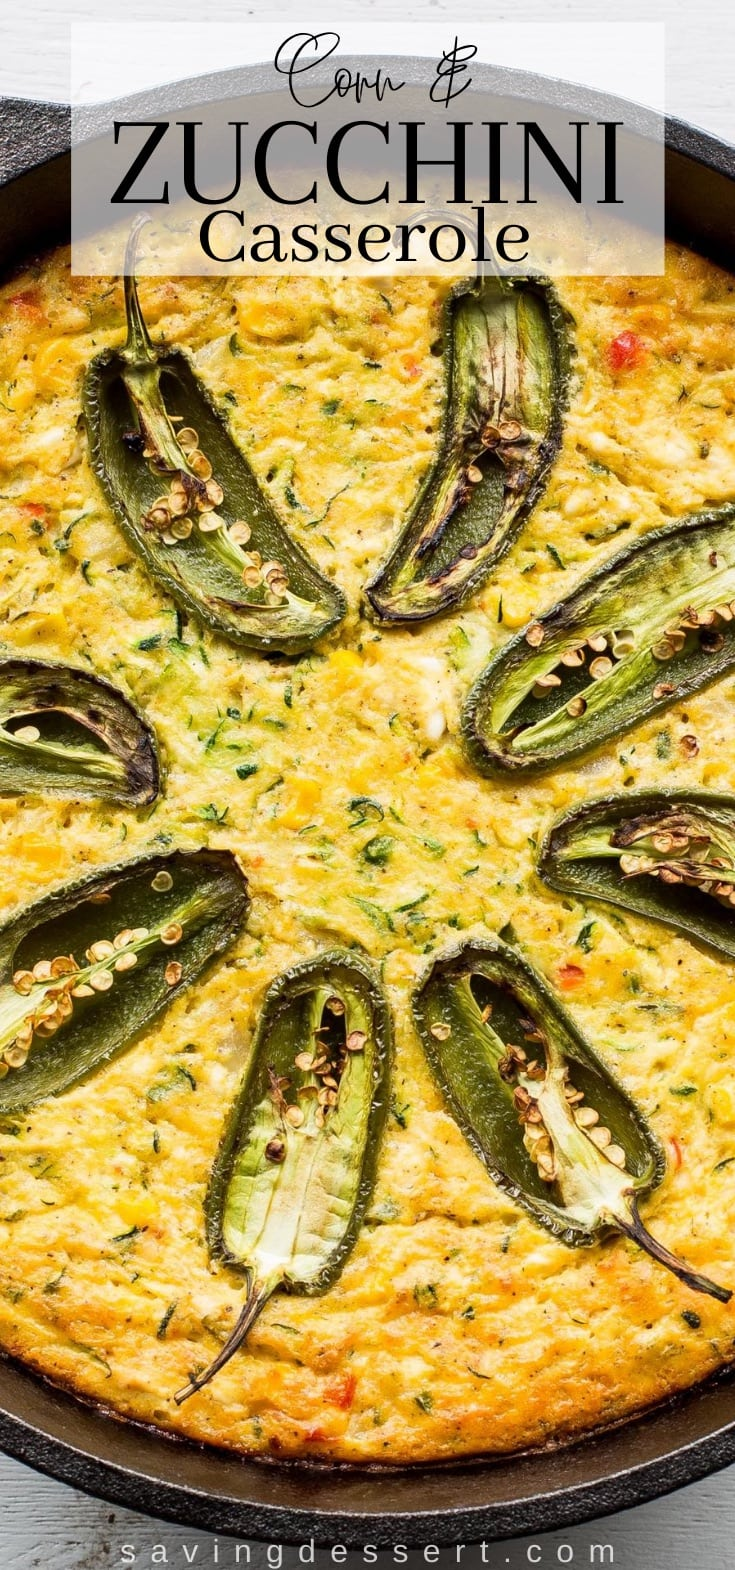 A cast iron pot filled with a corn and zucchini casserole topped with jalapeño peppers